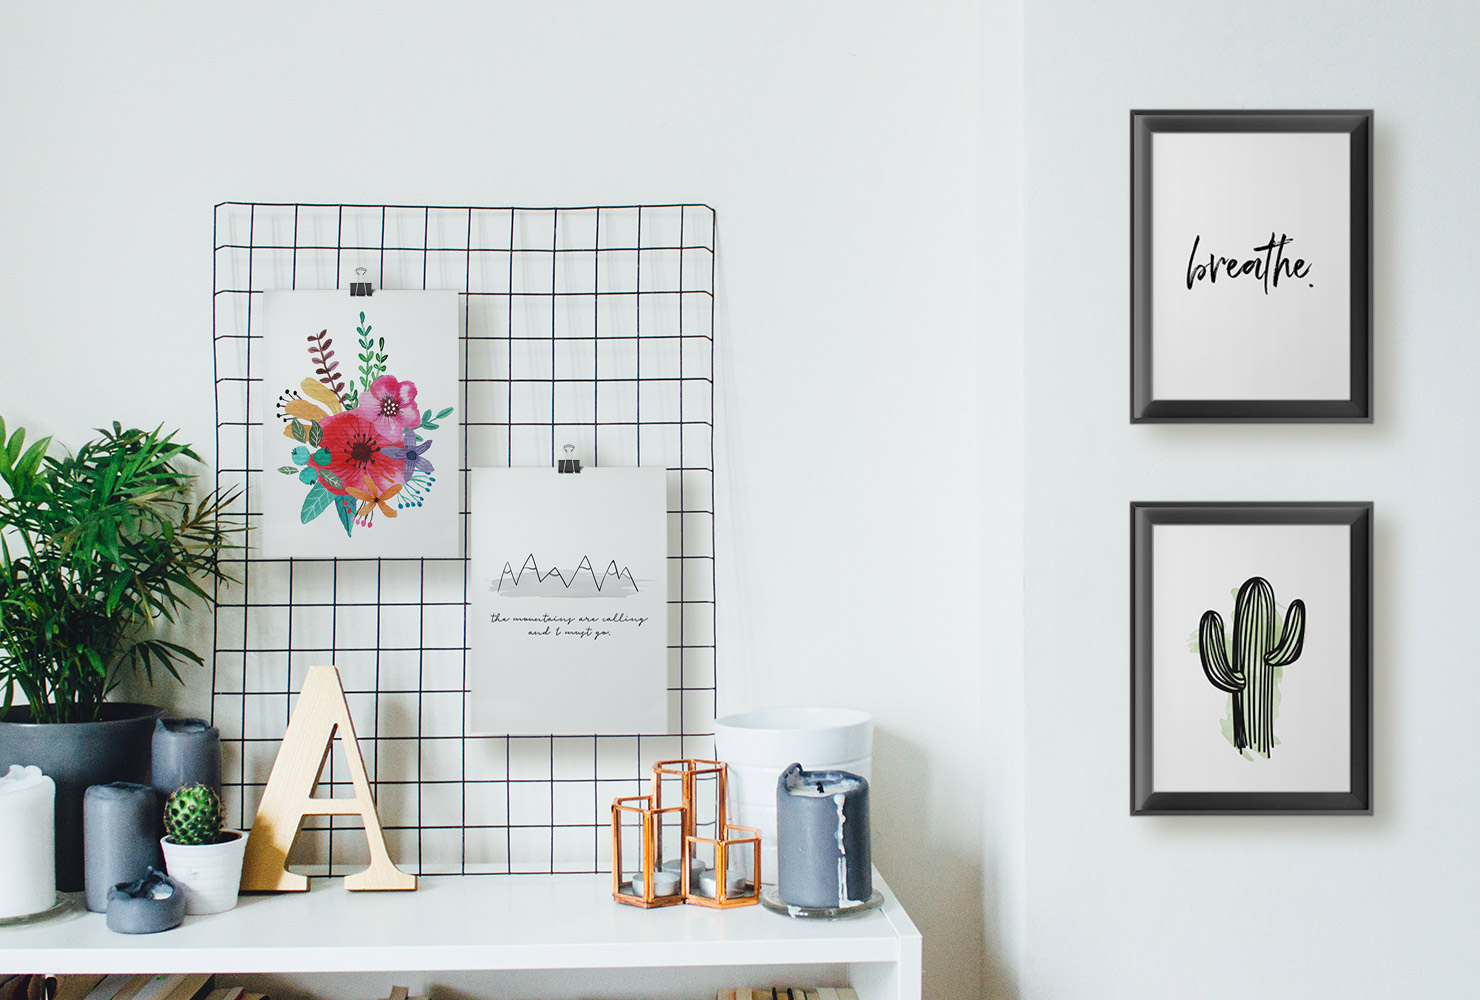 25 Unique DIY Wall Art Ideas (With Printables) | Shutterfly